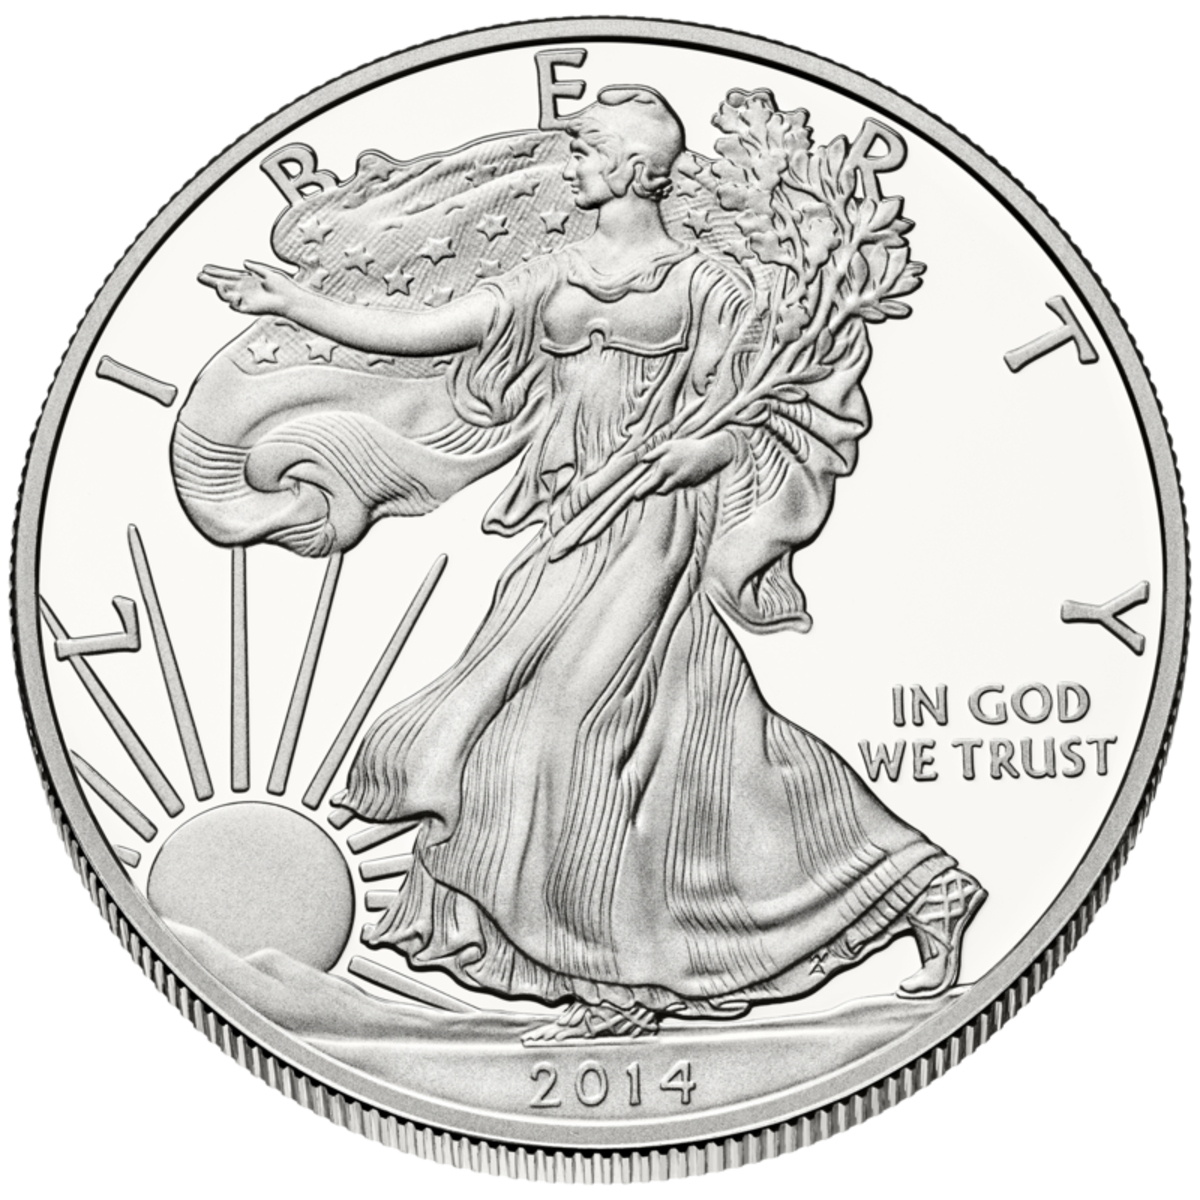 United States Liberty $1 Silver Coin